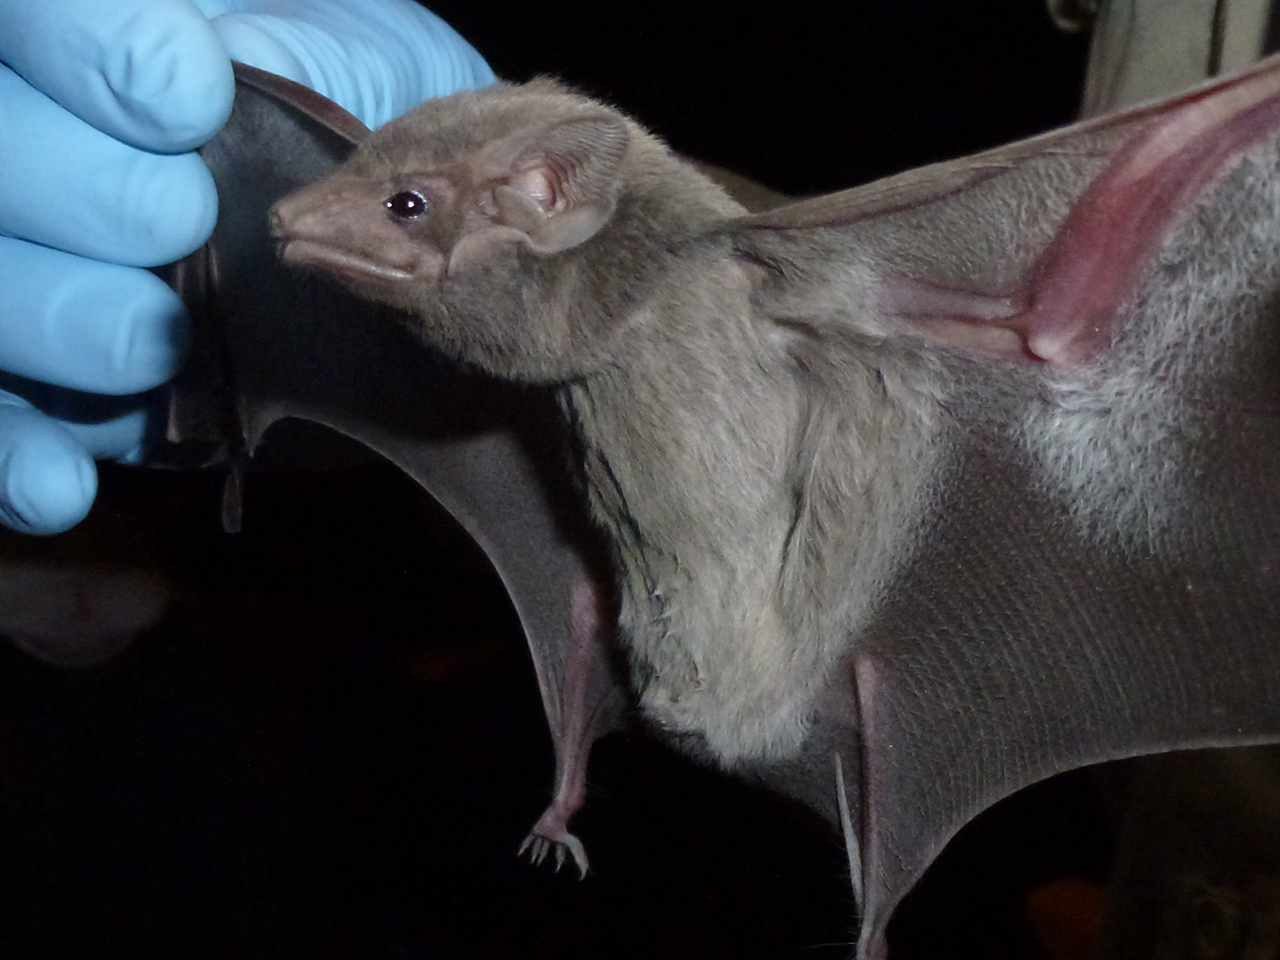 Taphozous perforates, the Egyptian Tomb bat, has been found to carry Middle East Respiratory Syndrome (MERS) virus